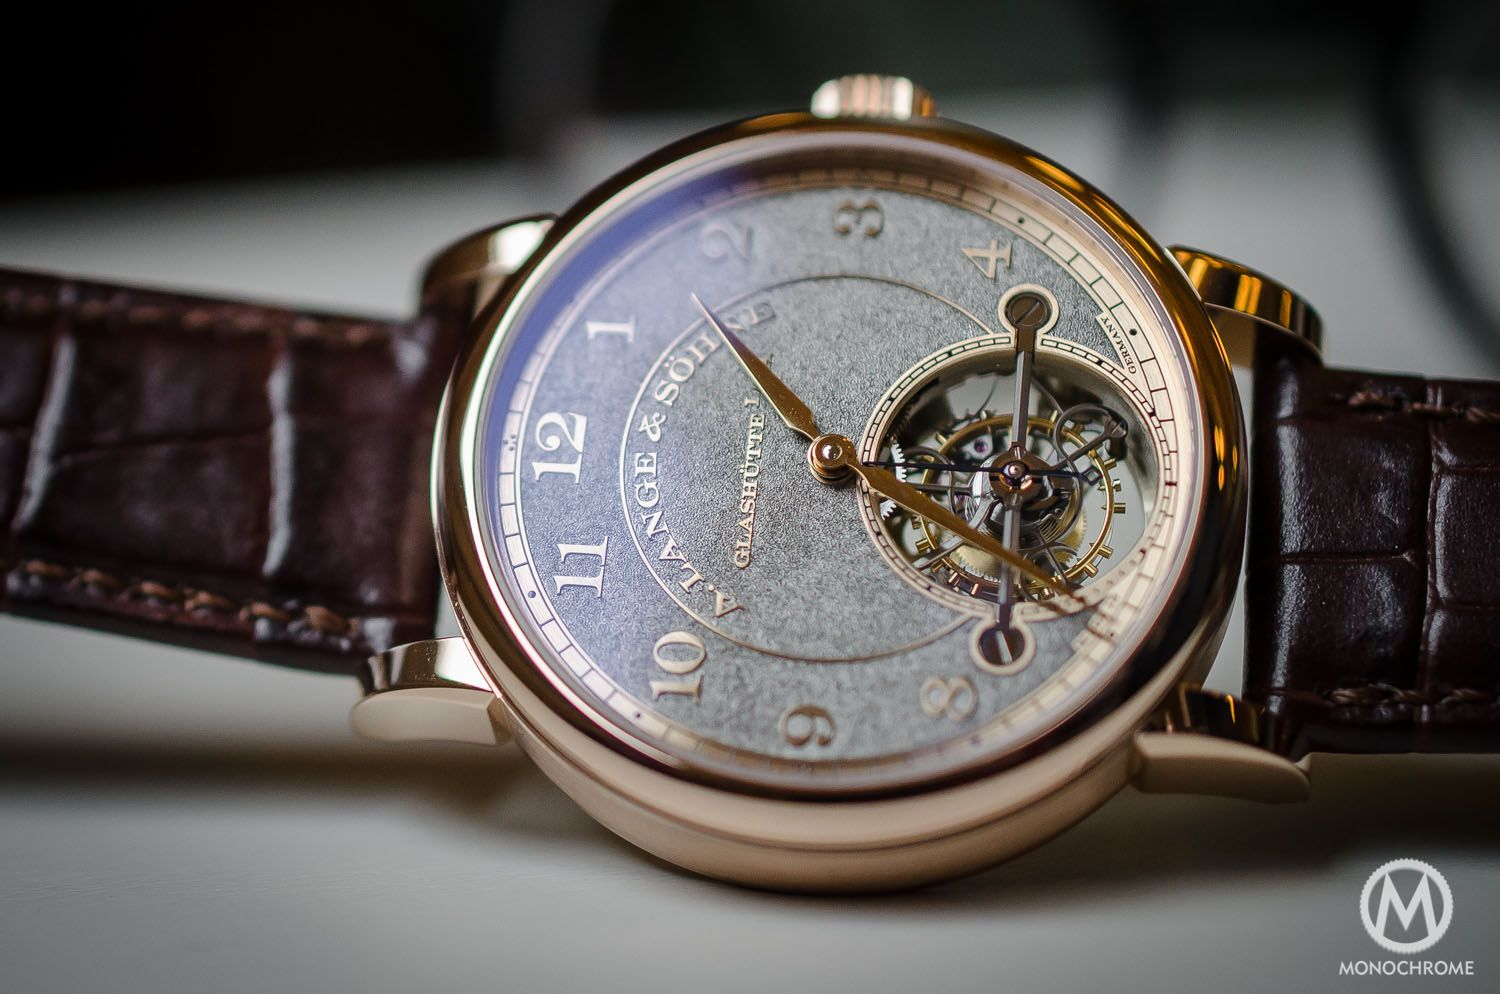 Hands-on With My Rose Gold A. Lange & Sohne 1815 Tourbillon Watch Replica -  Top Replica Watches For Sale Online